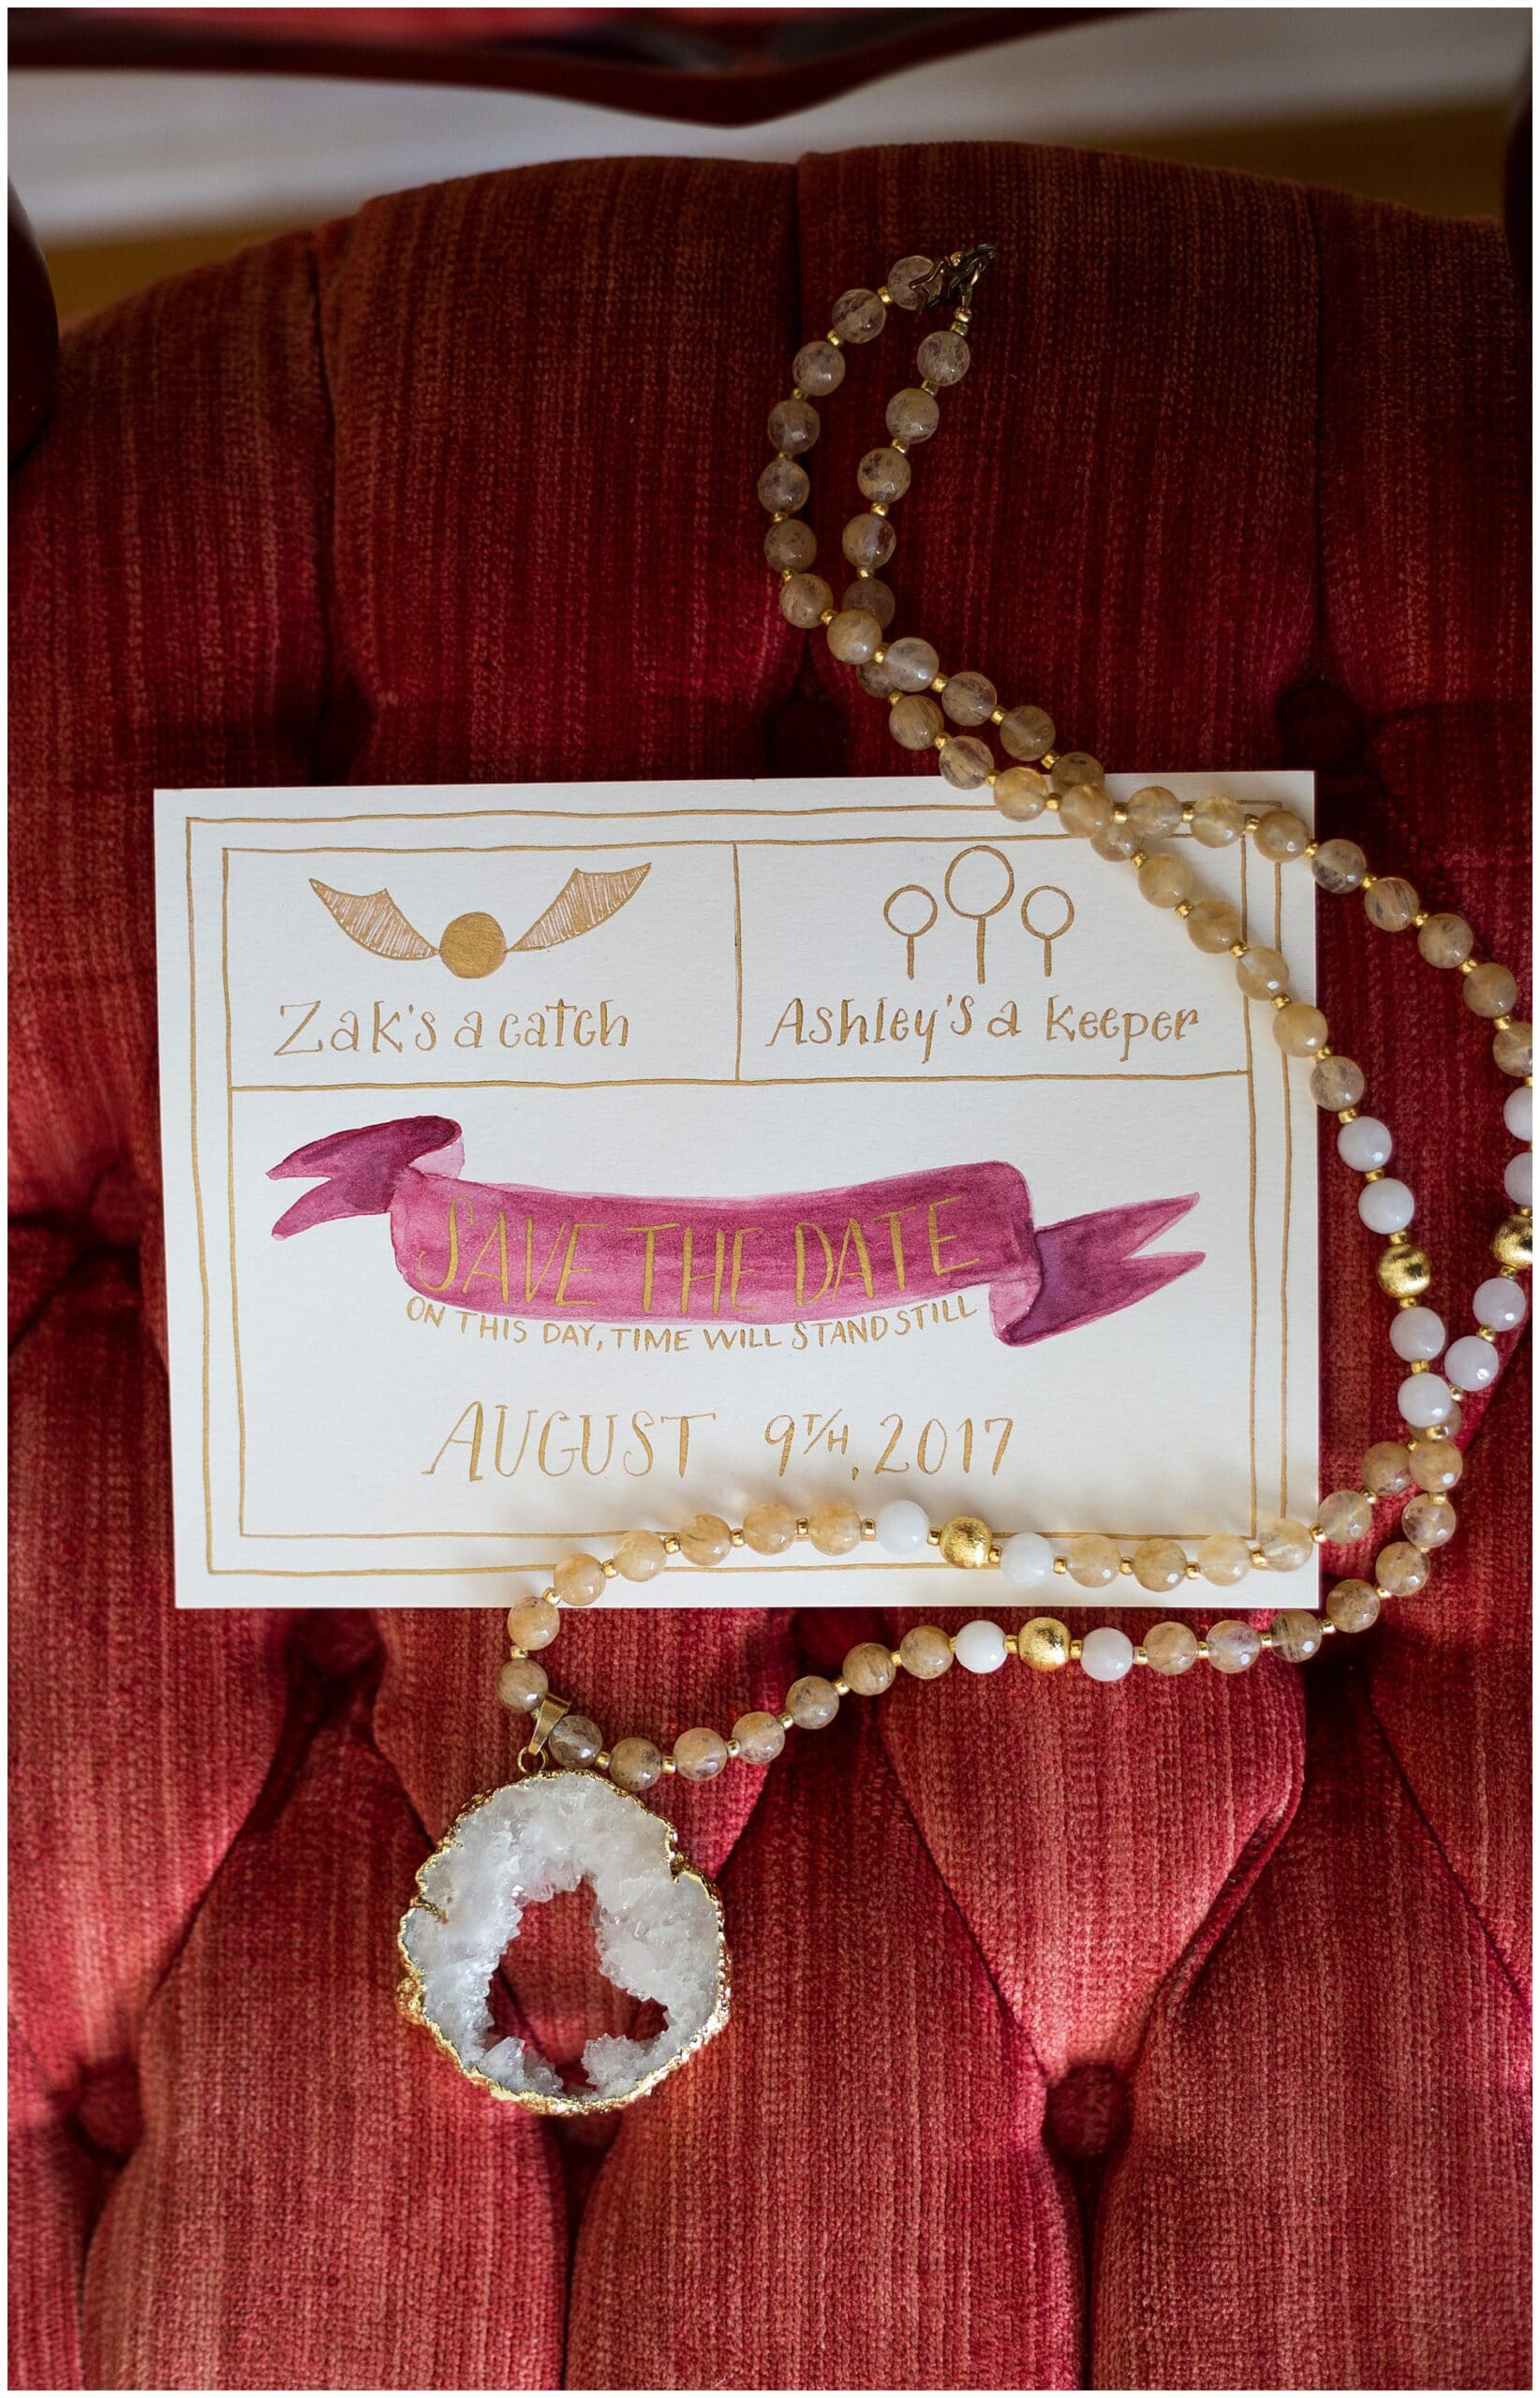 Harry Potter save the date invitations to the Grand Texana in Houston Texas photographed by Swish and Click Photography